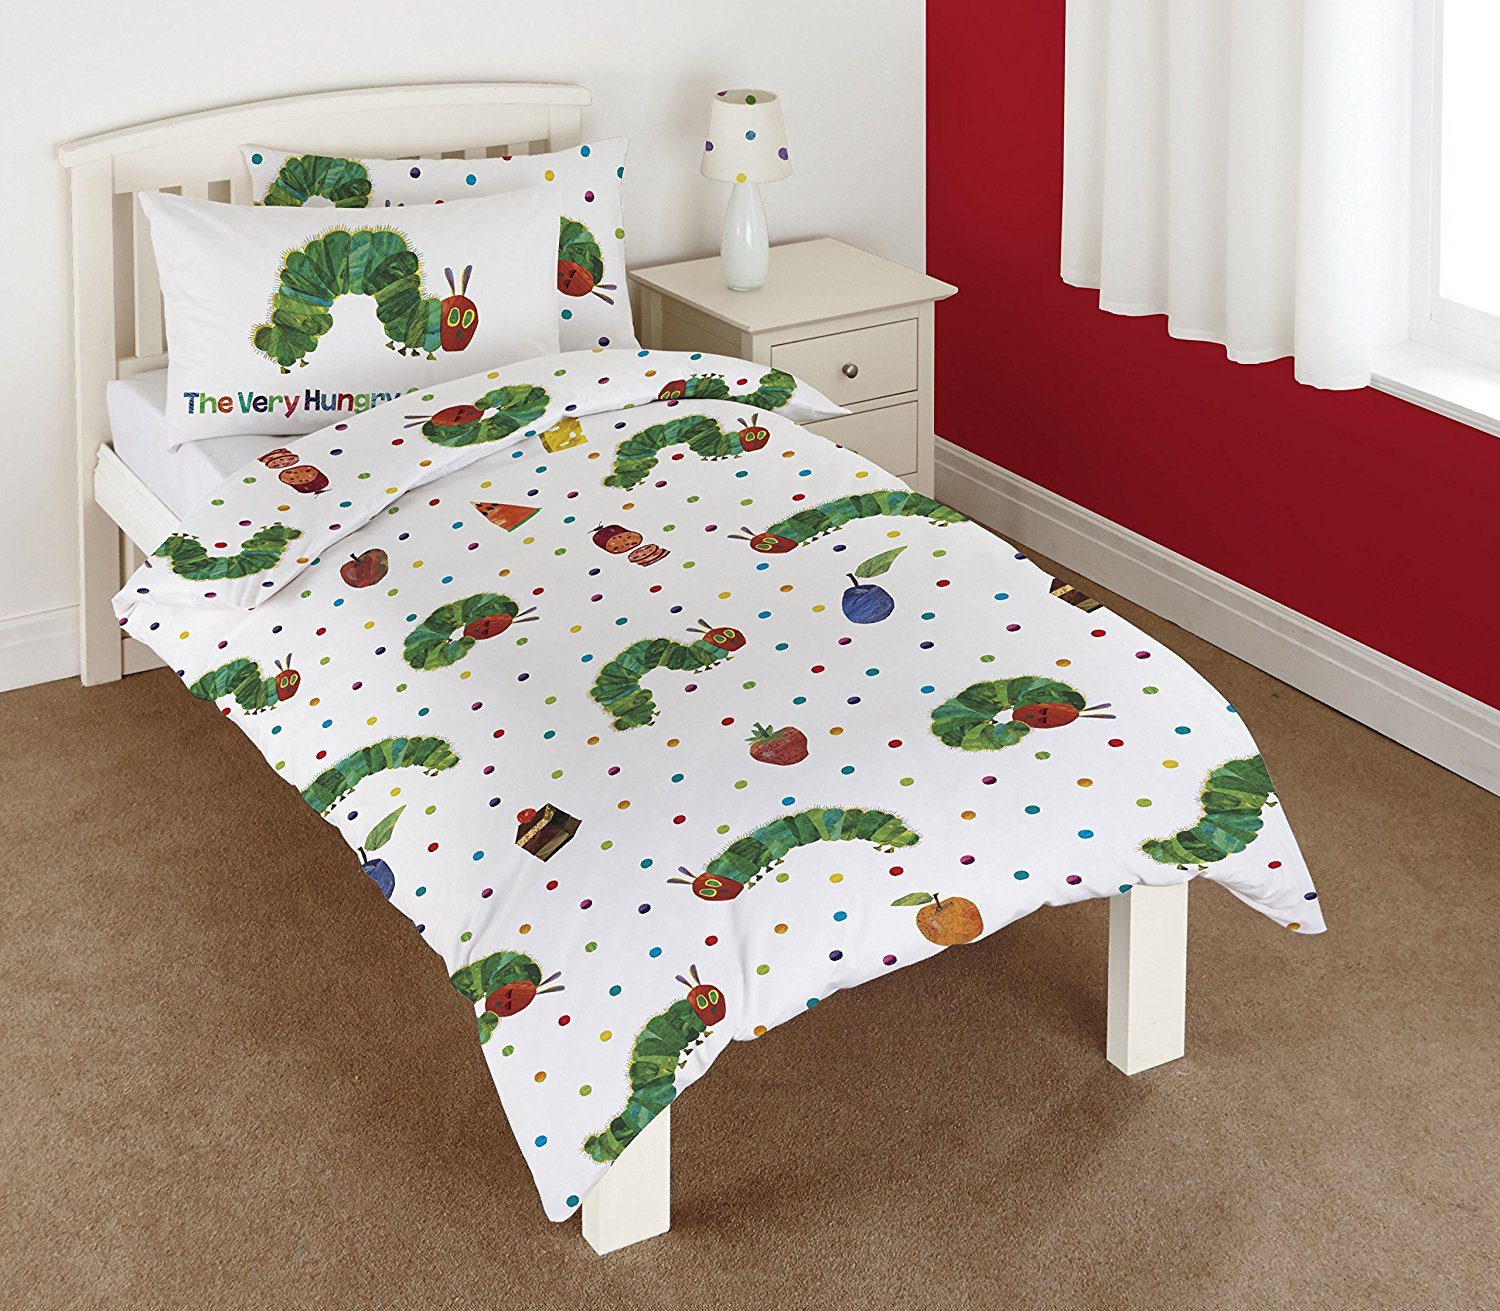 COTTON THE VERY HUNGRY CATERPILLAR JUNIOR TODDLER COT BED DUVET